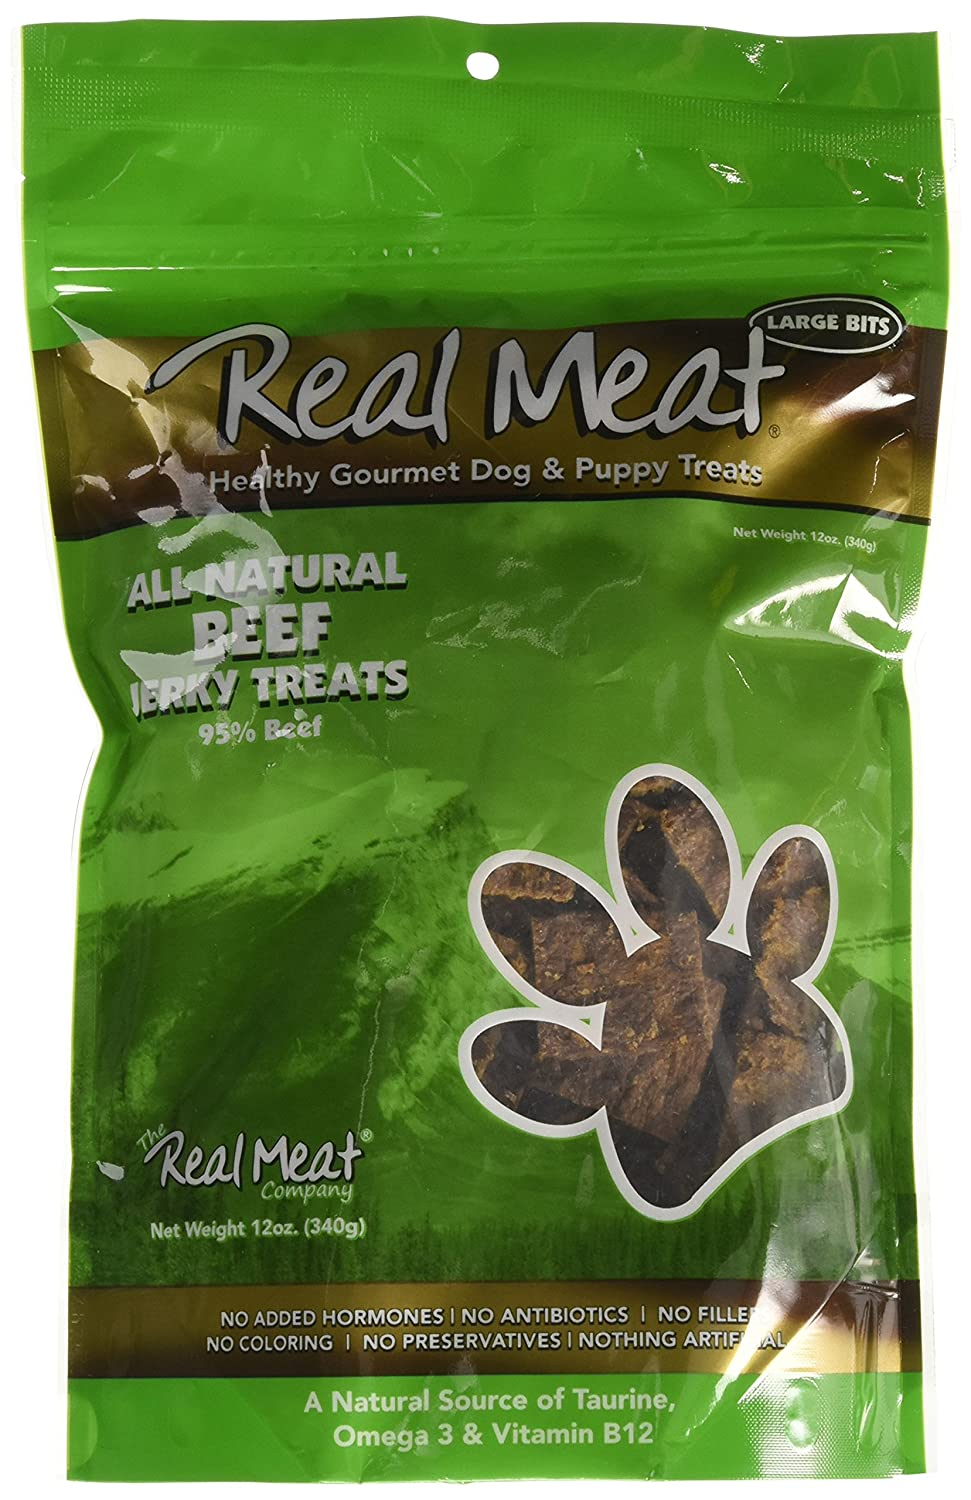 12-oz pouch Real Meat Large Bits Beef Jerky Dog Treats 12 Oz